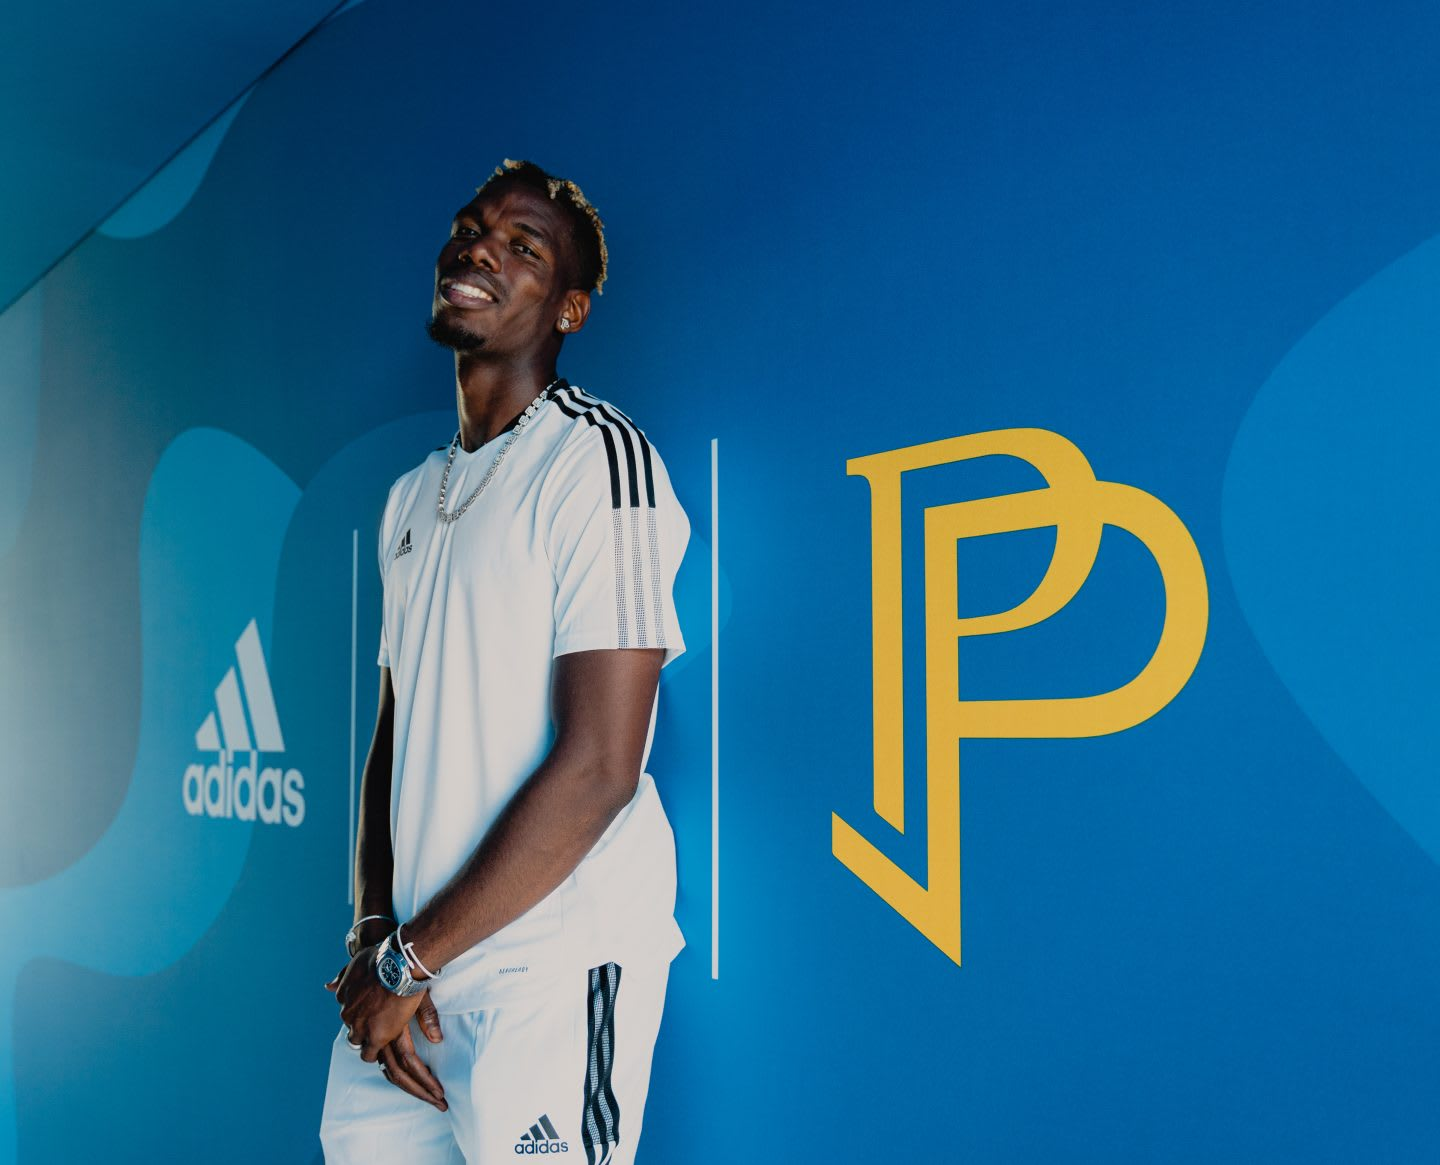 Paul Pogba standing on a wall painted with his logo. Football, legend, adidas, star,, playing football